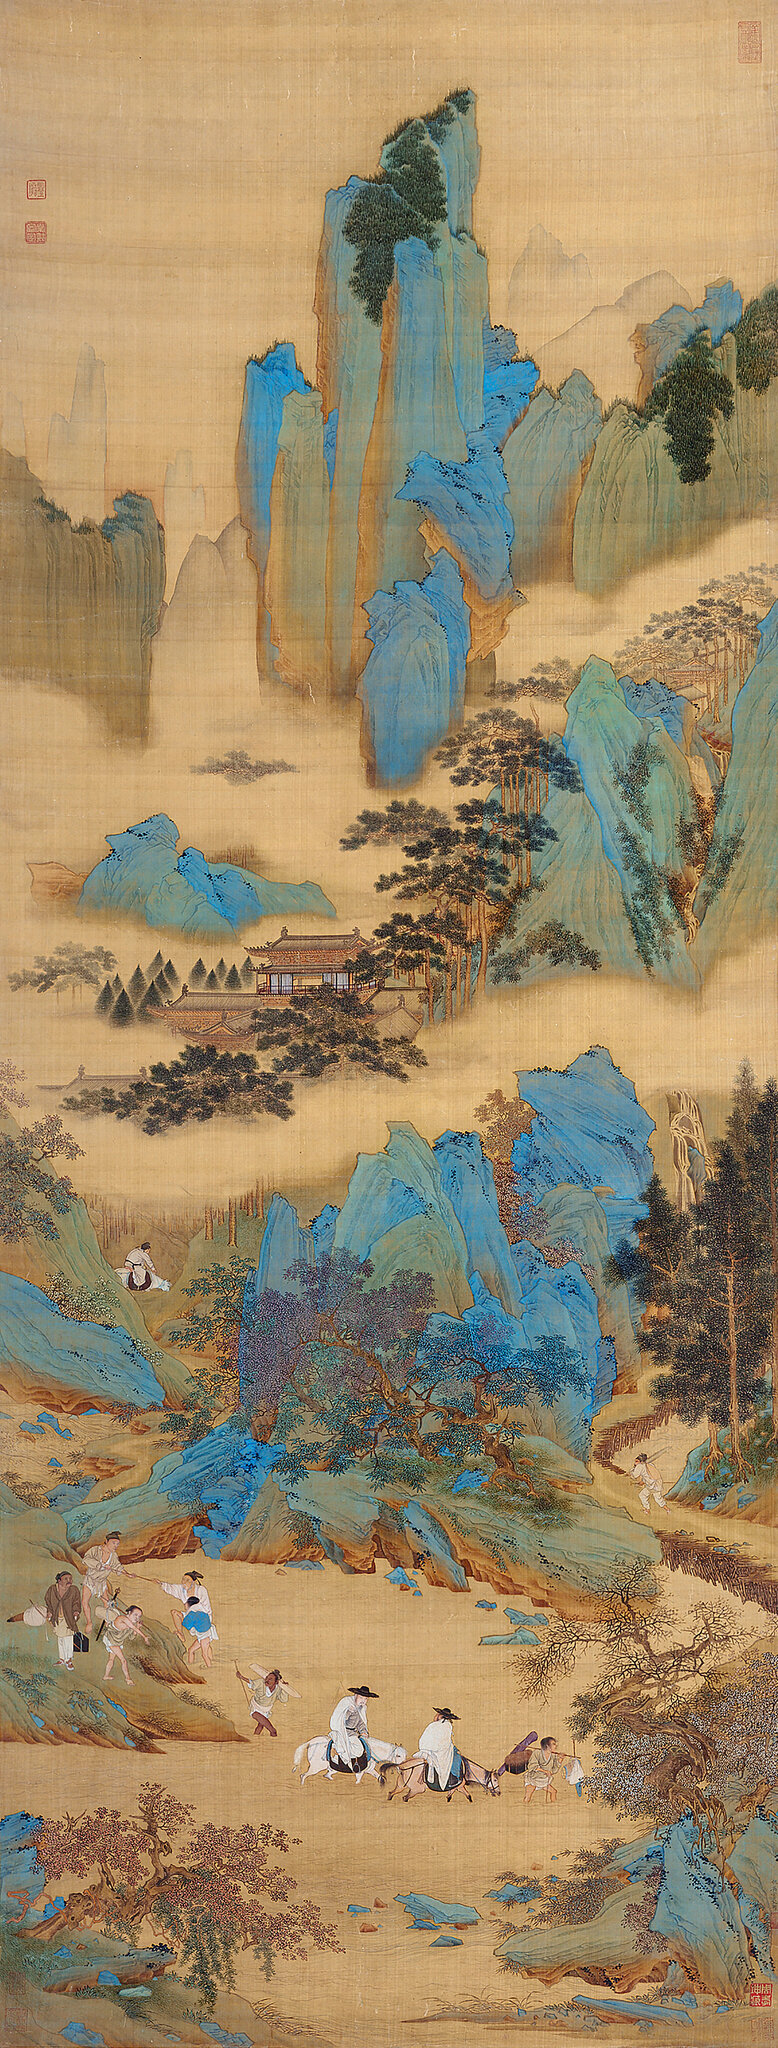 Where The Truth Lies The Art Of Qiu Ying At Los Angeles County Museum Of Art Alain R Truong